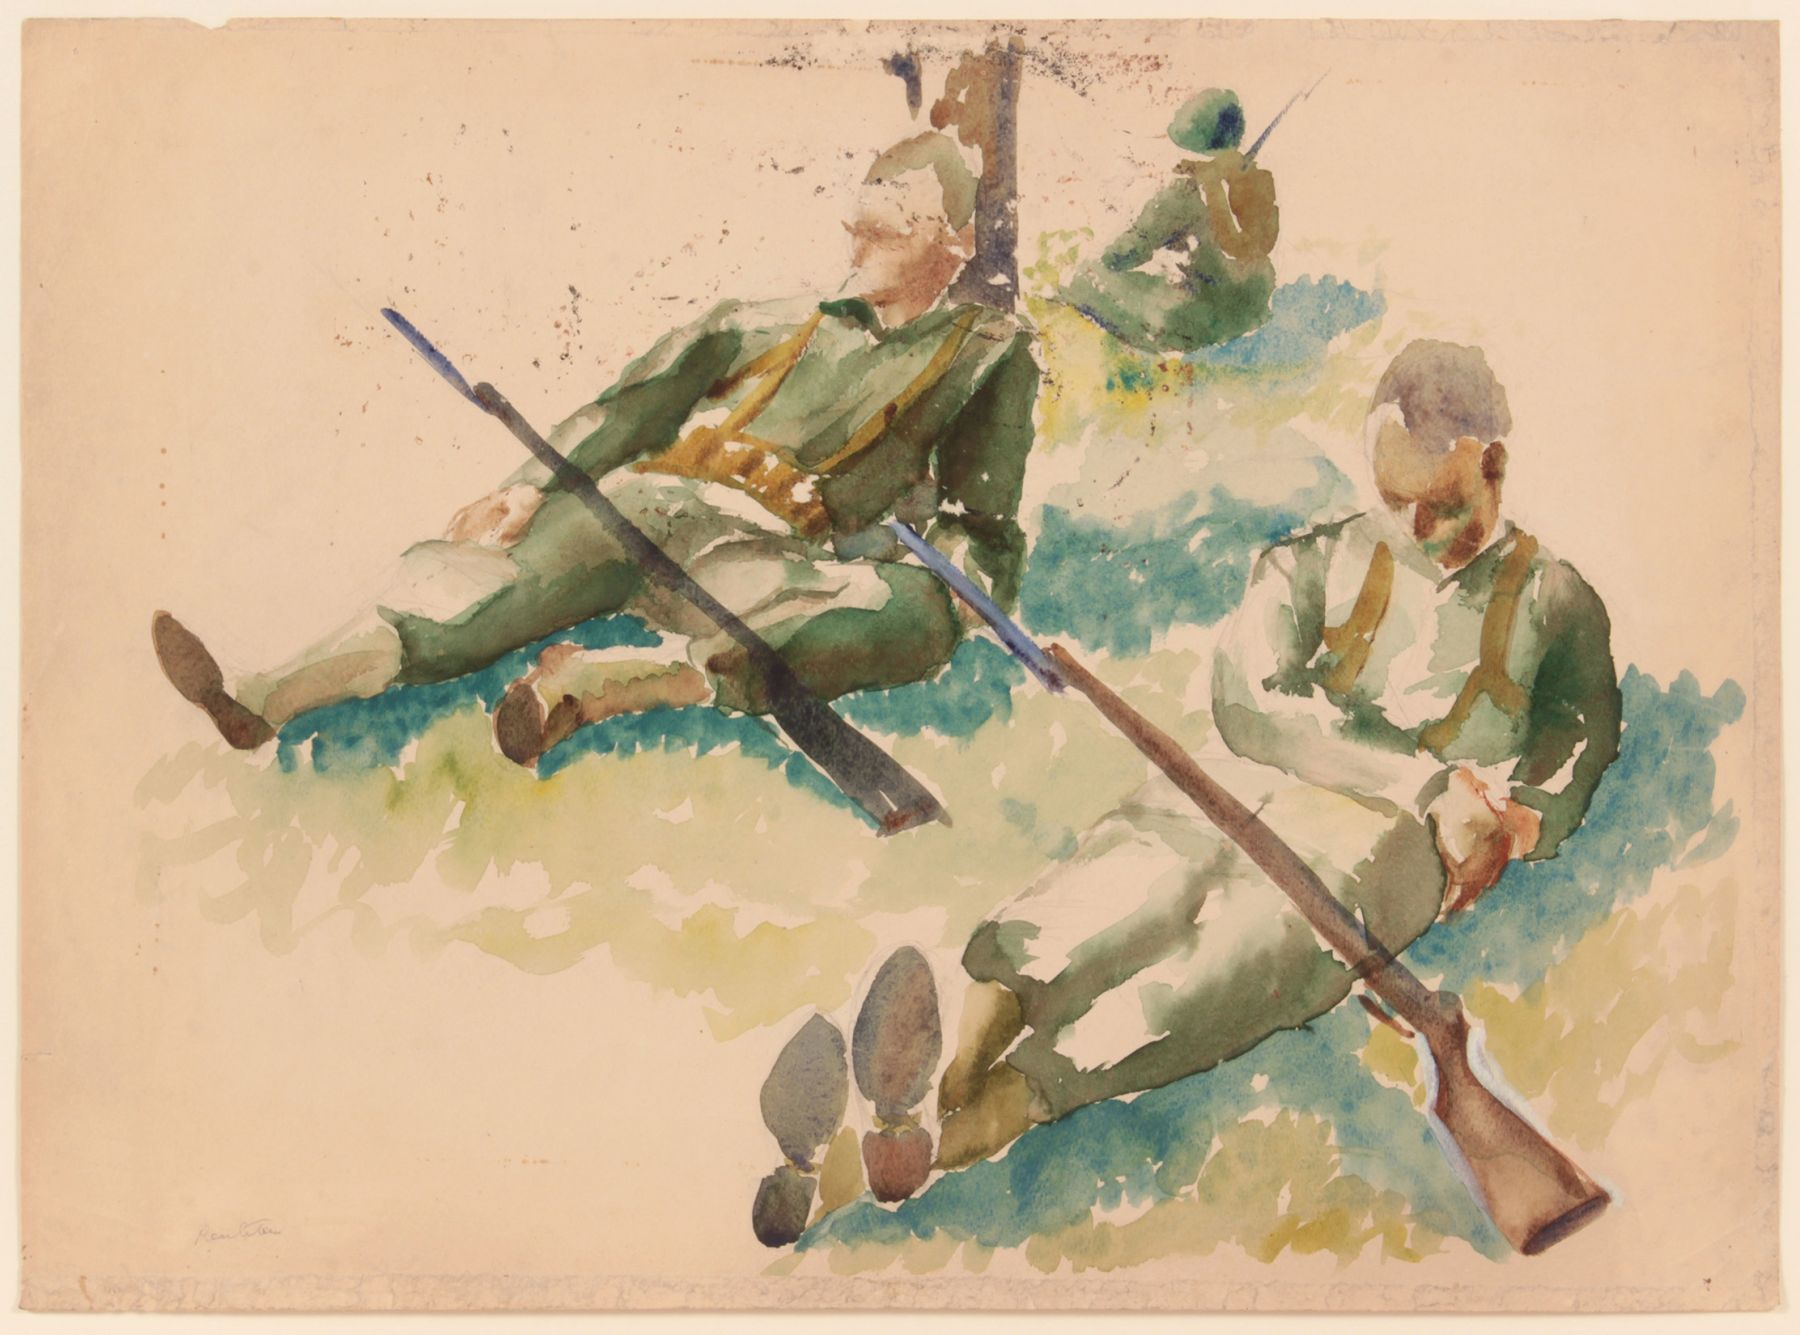 Philip Pearlstein Training in Florida (3 soldiers resting), 1943